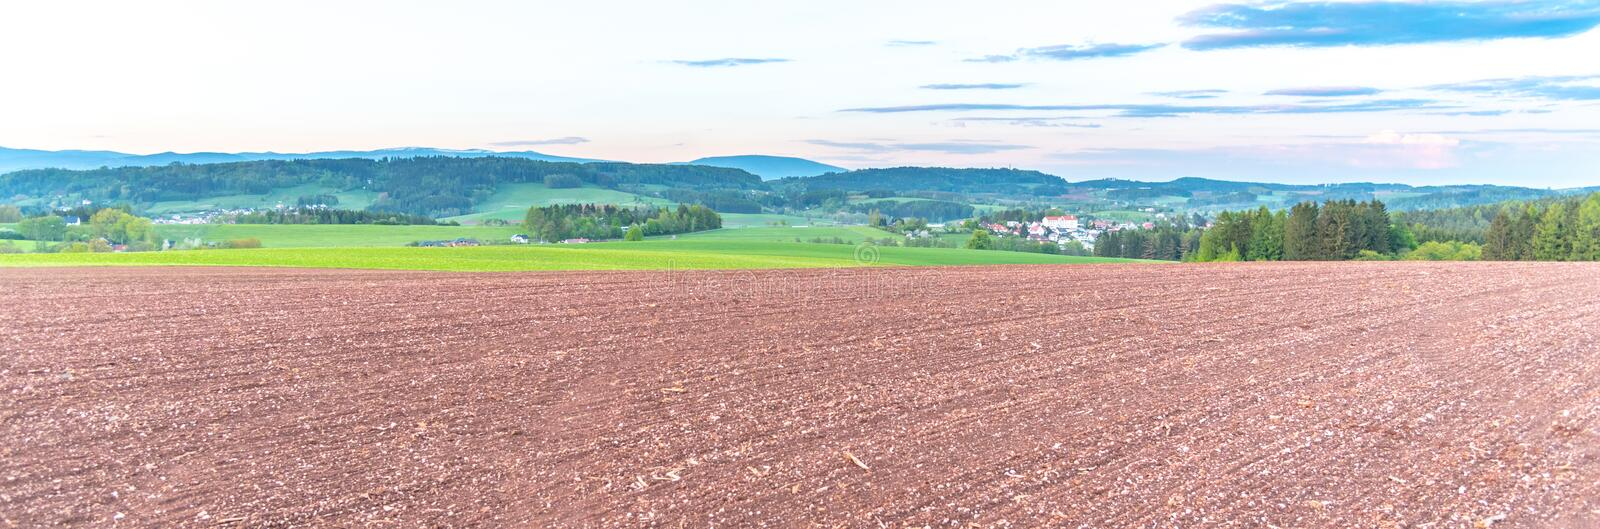 Rural agricultural landscape. Red soil fields around Nova Paka, Czech Republic.  royalty free stock photo